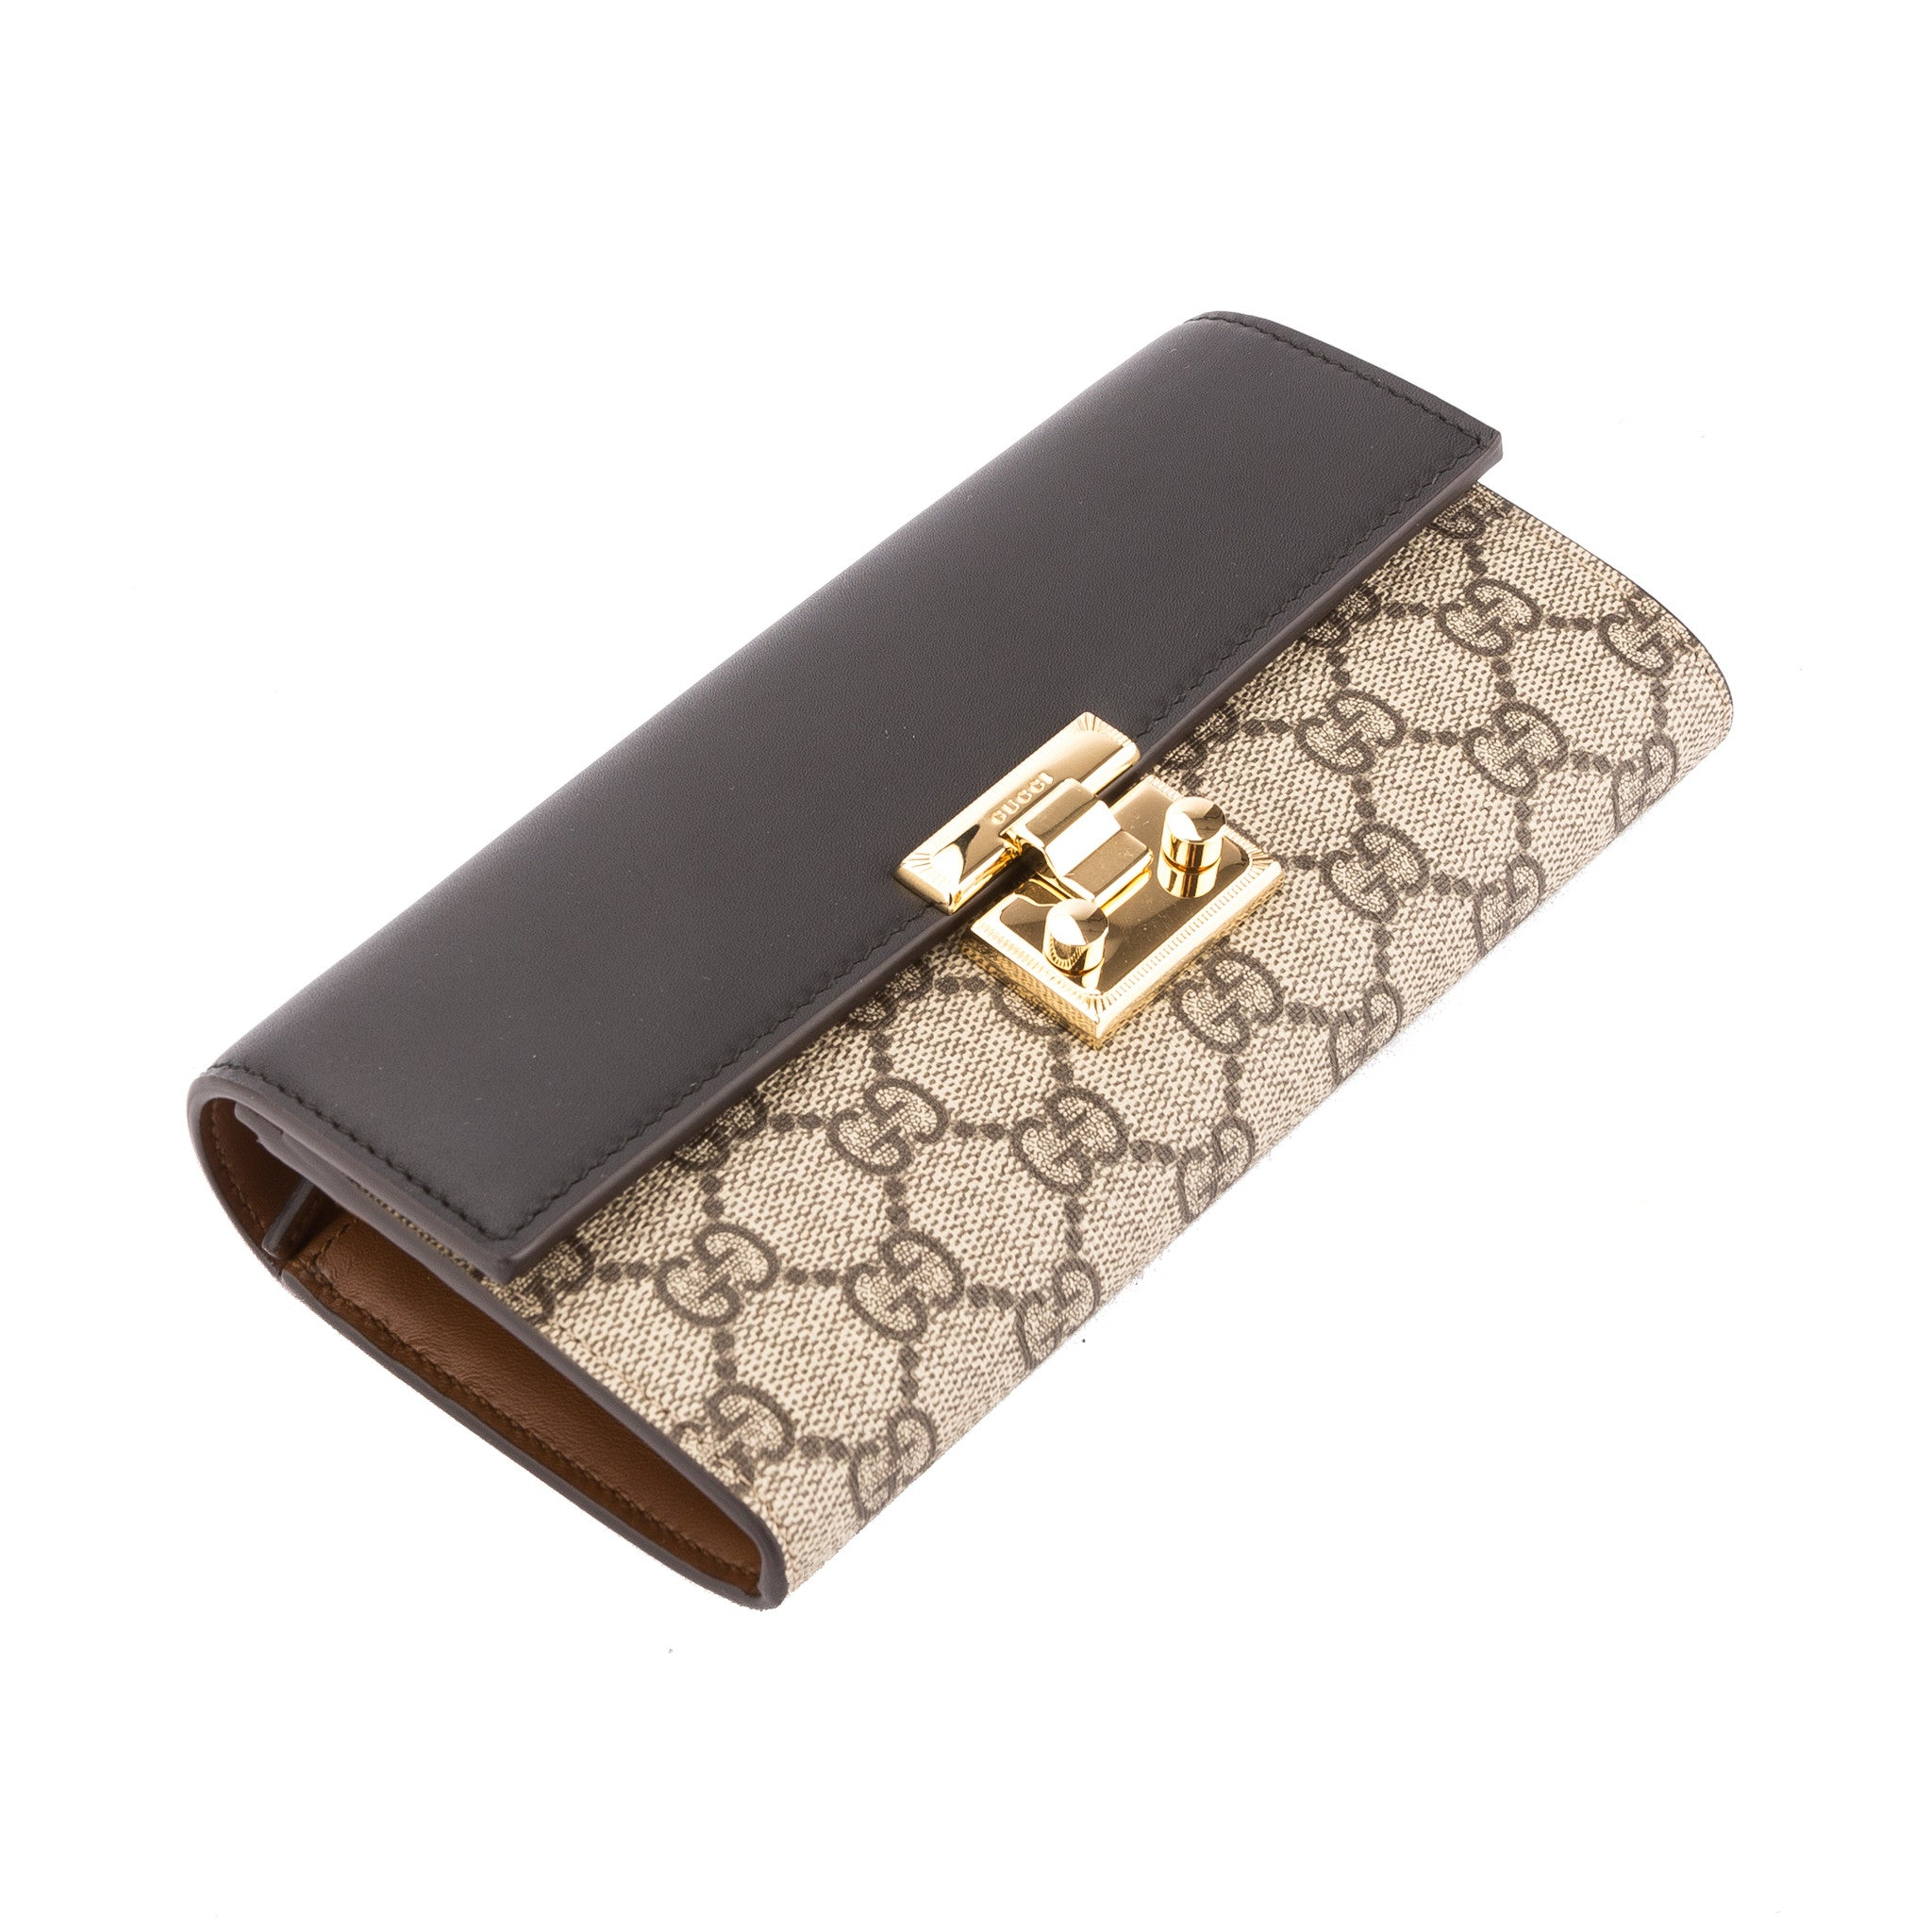 dd5a22ba58b Gucci Black Leather GG Supreme Padlock Continental Wallet (New with Ta -  3452007